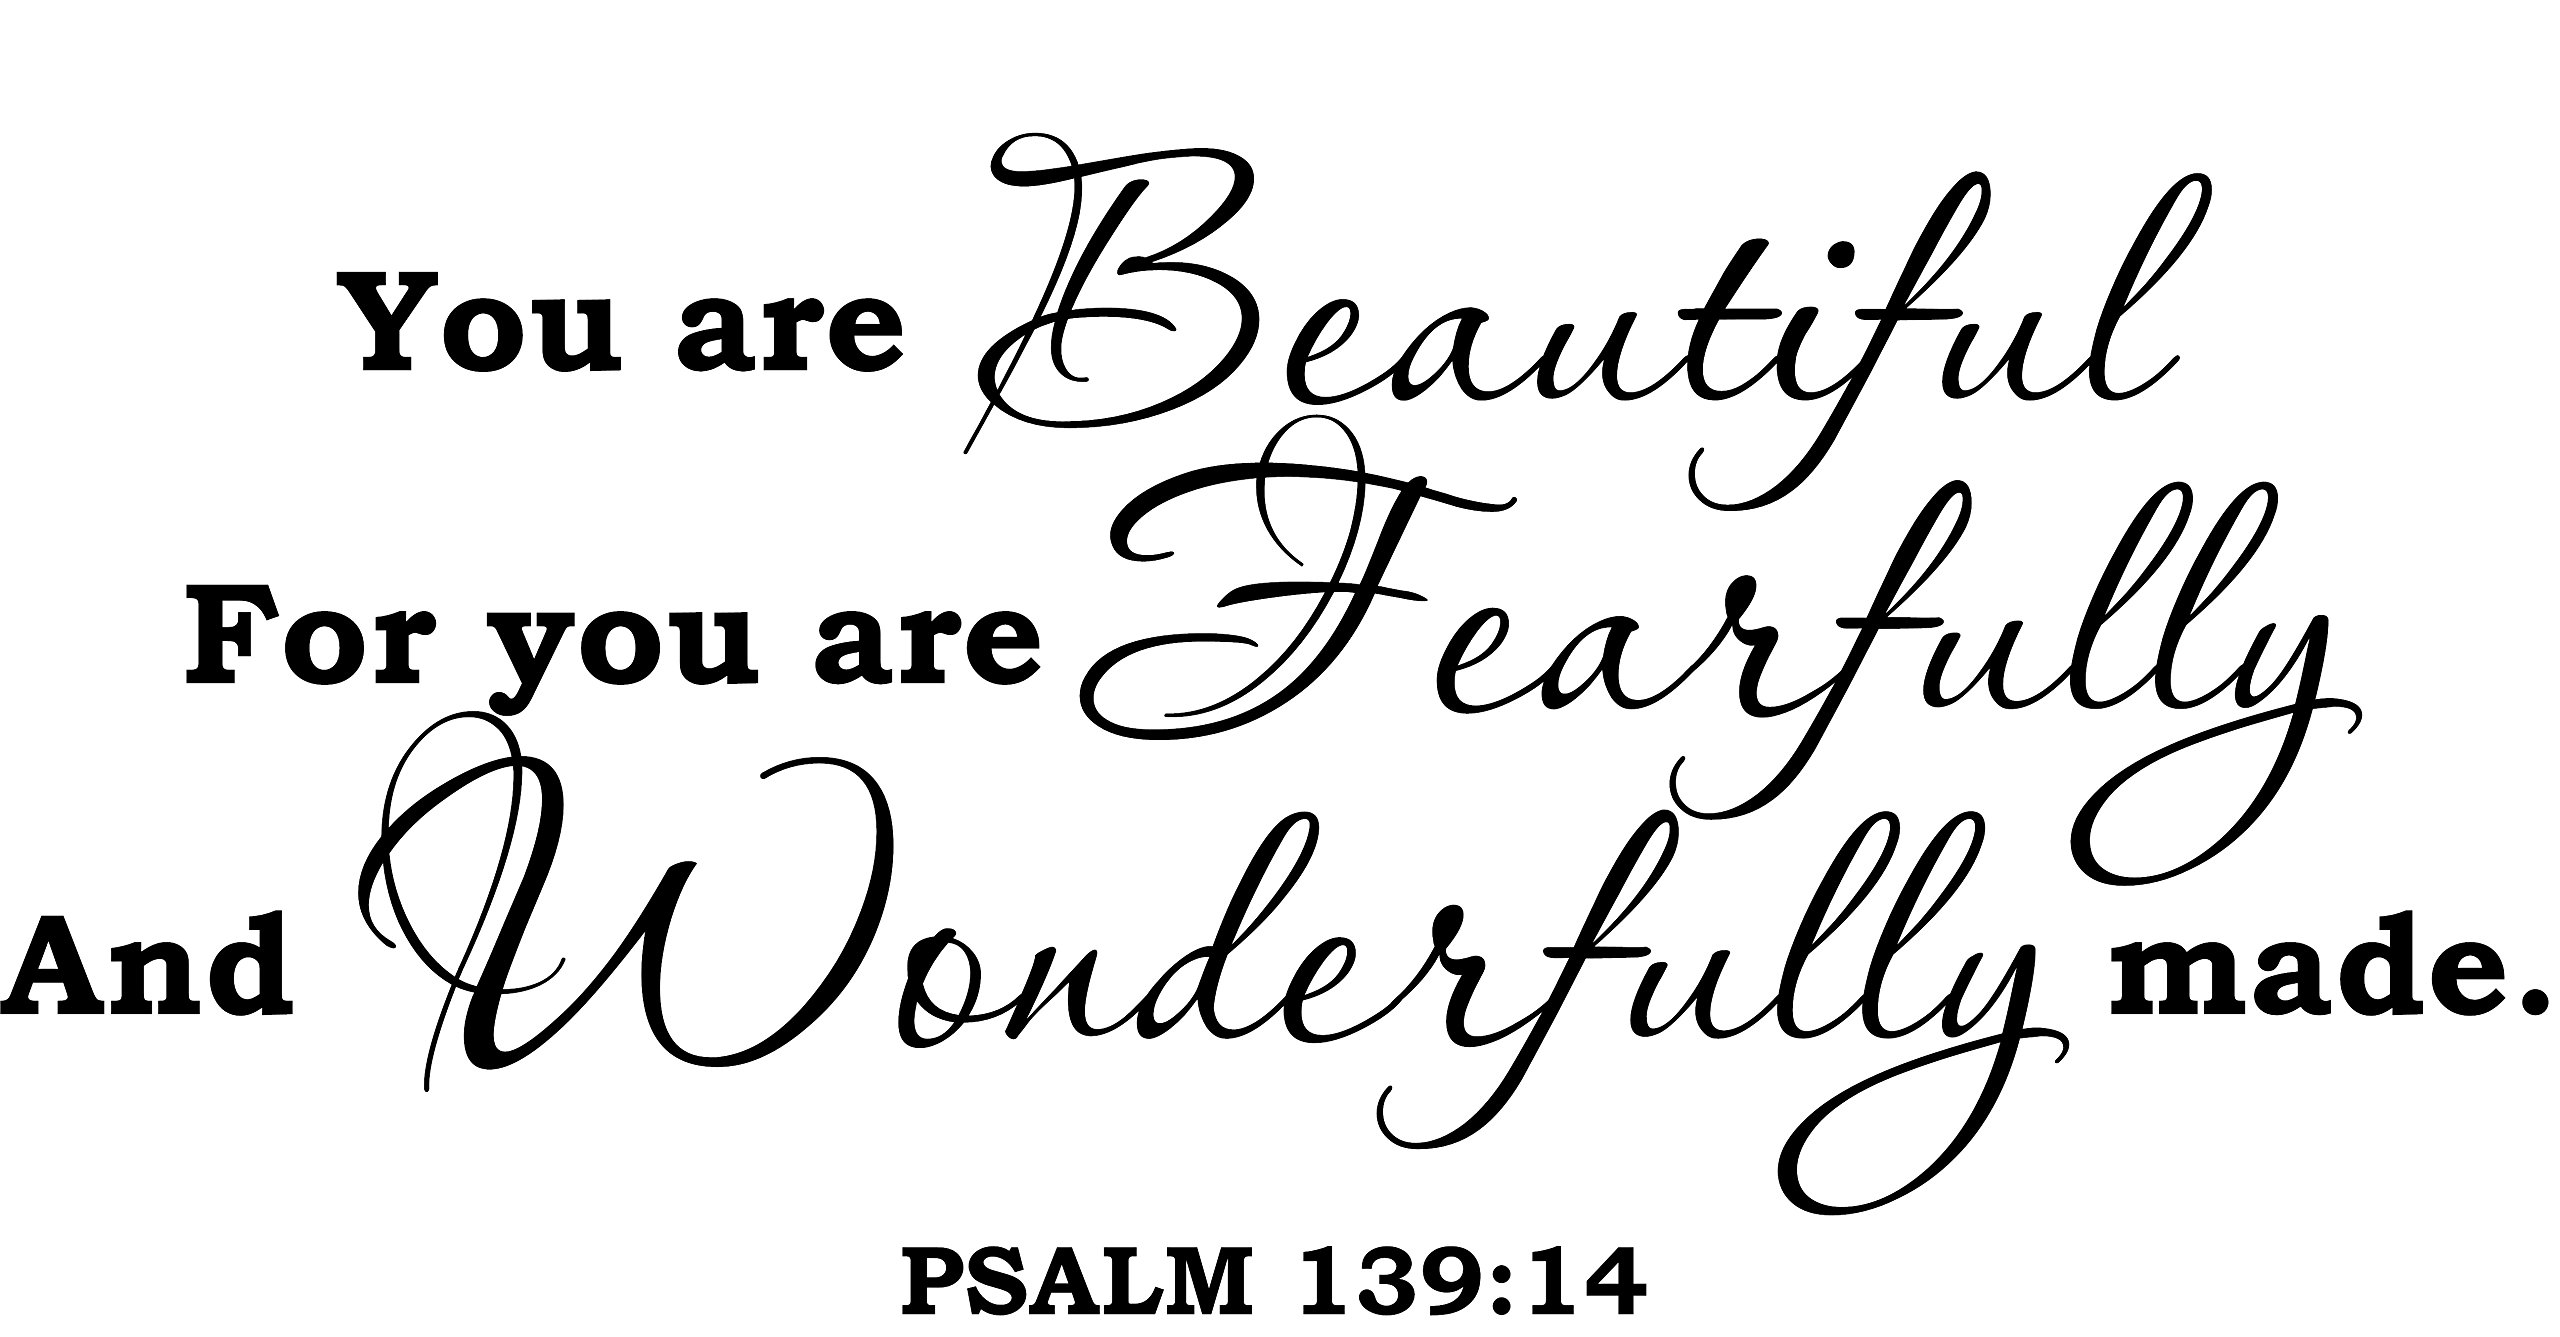 Wall Decal Quote Psalm 139:14 You Are Beautiful Bible Verse Scripture Wall Decal